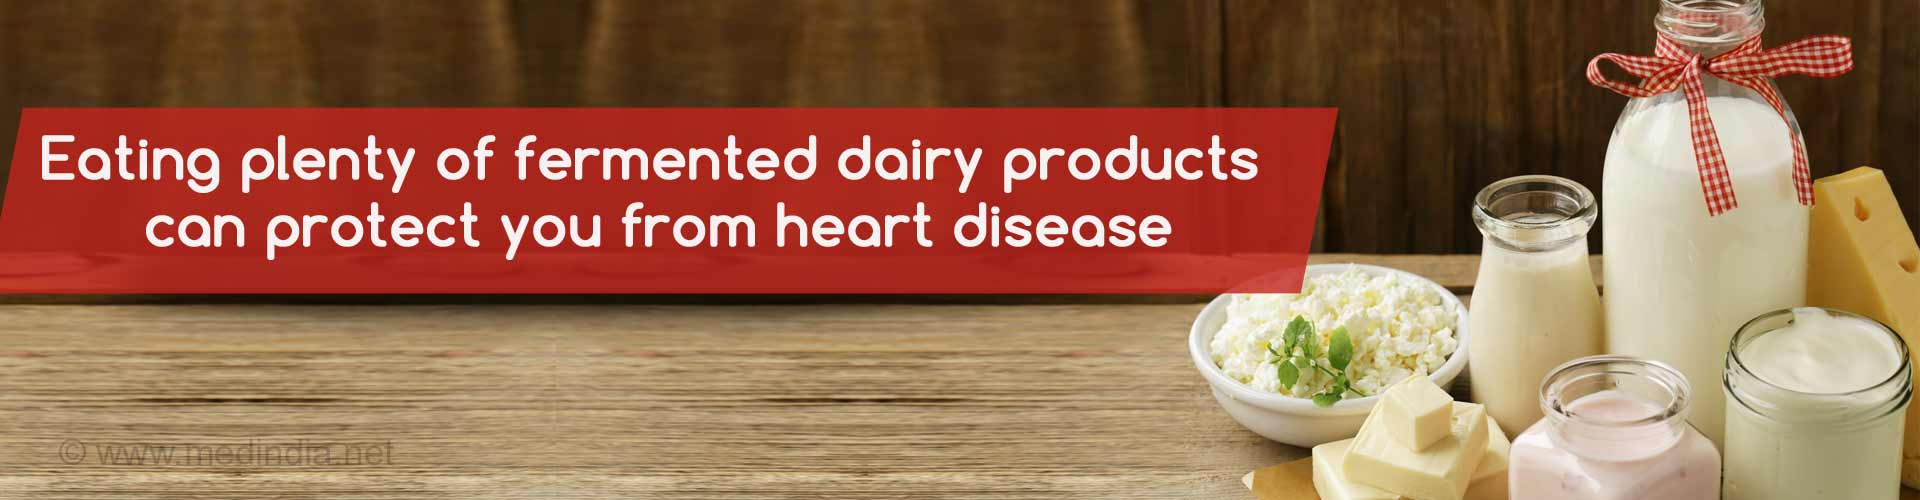 Eating plenty of fermented dairy products can protect you from heart disease.